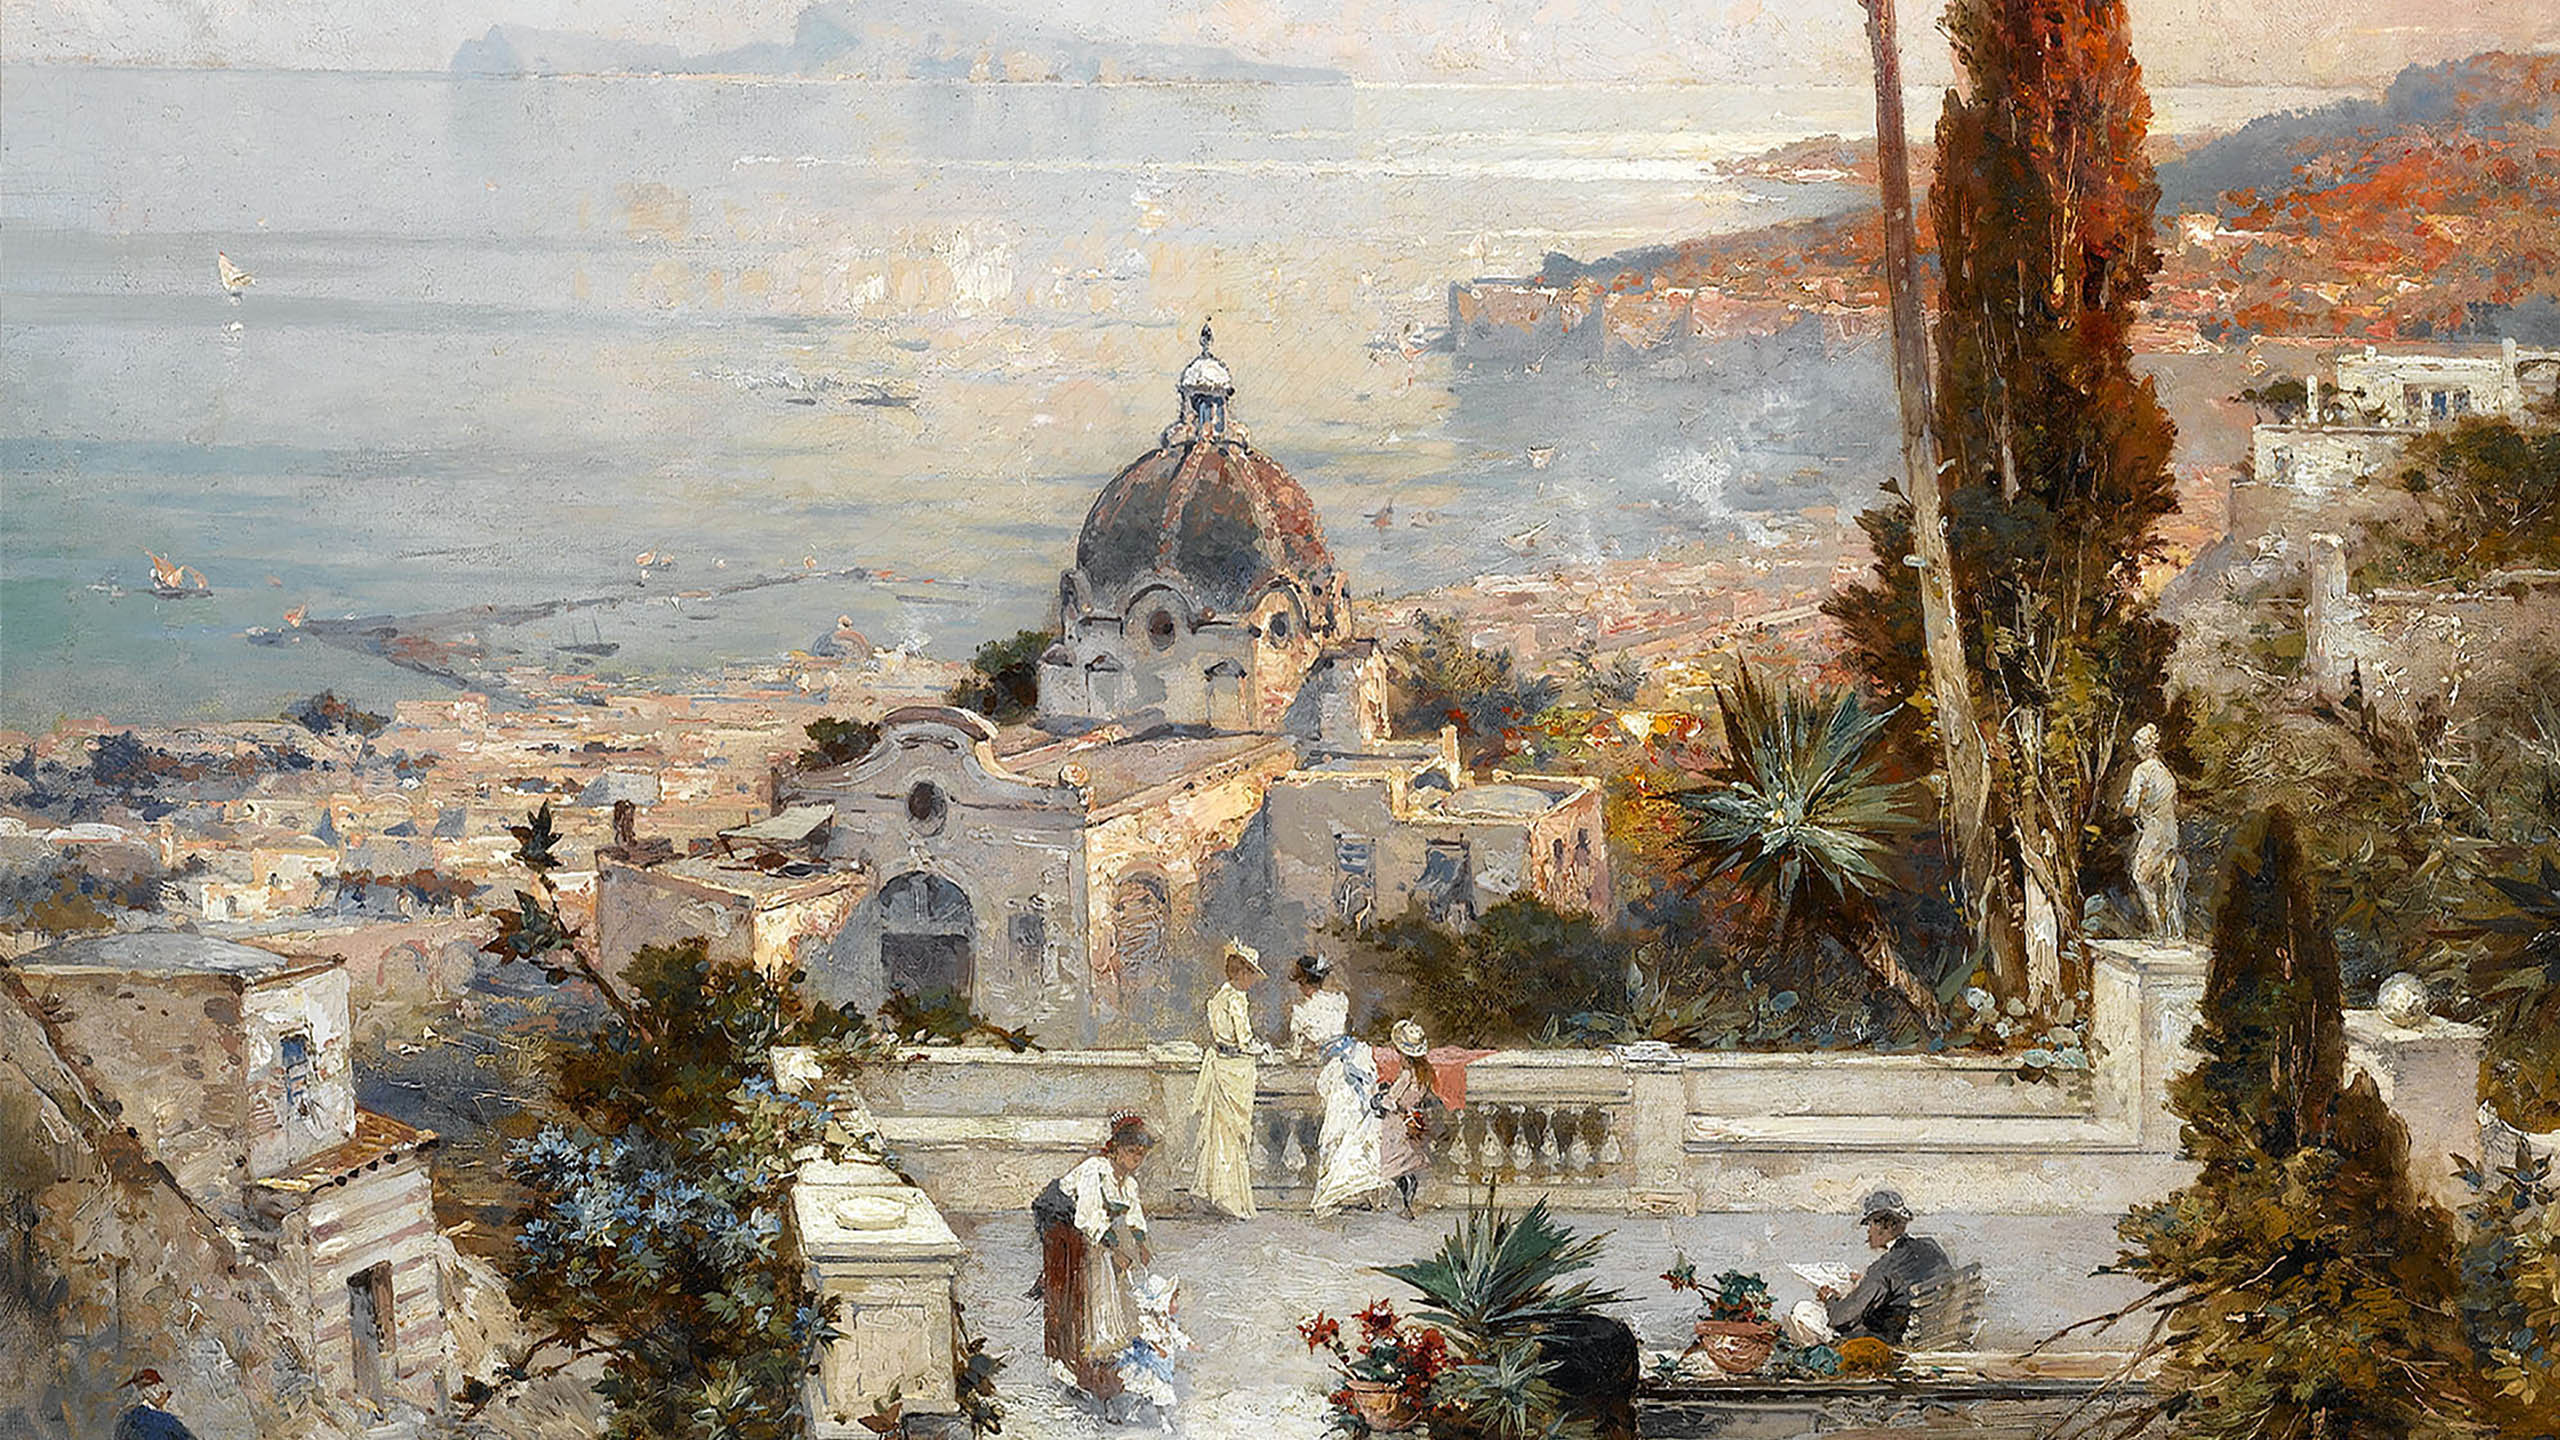 Franz Richard Unterberger - The view from the Balcony 2560x1440